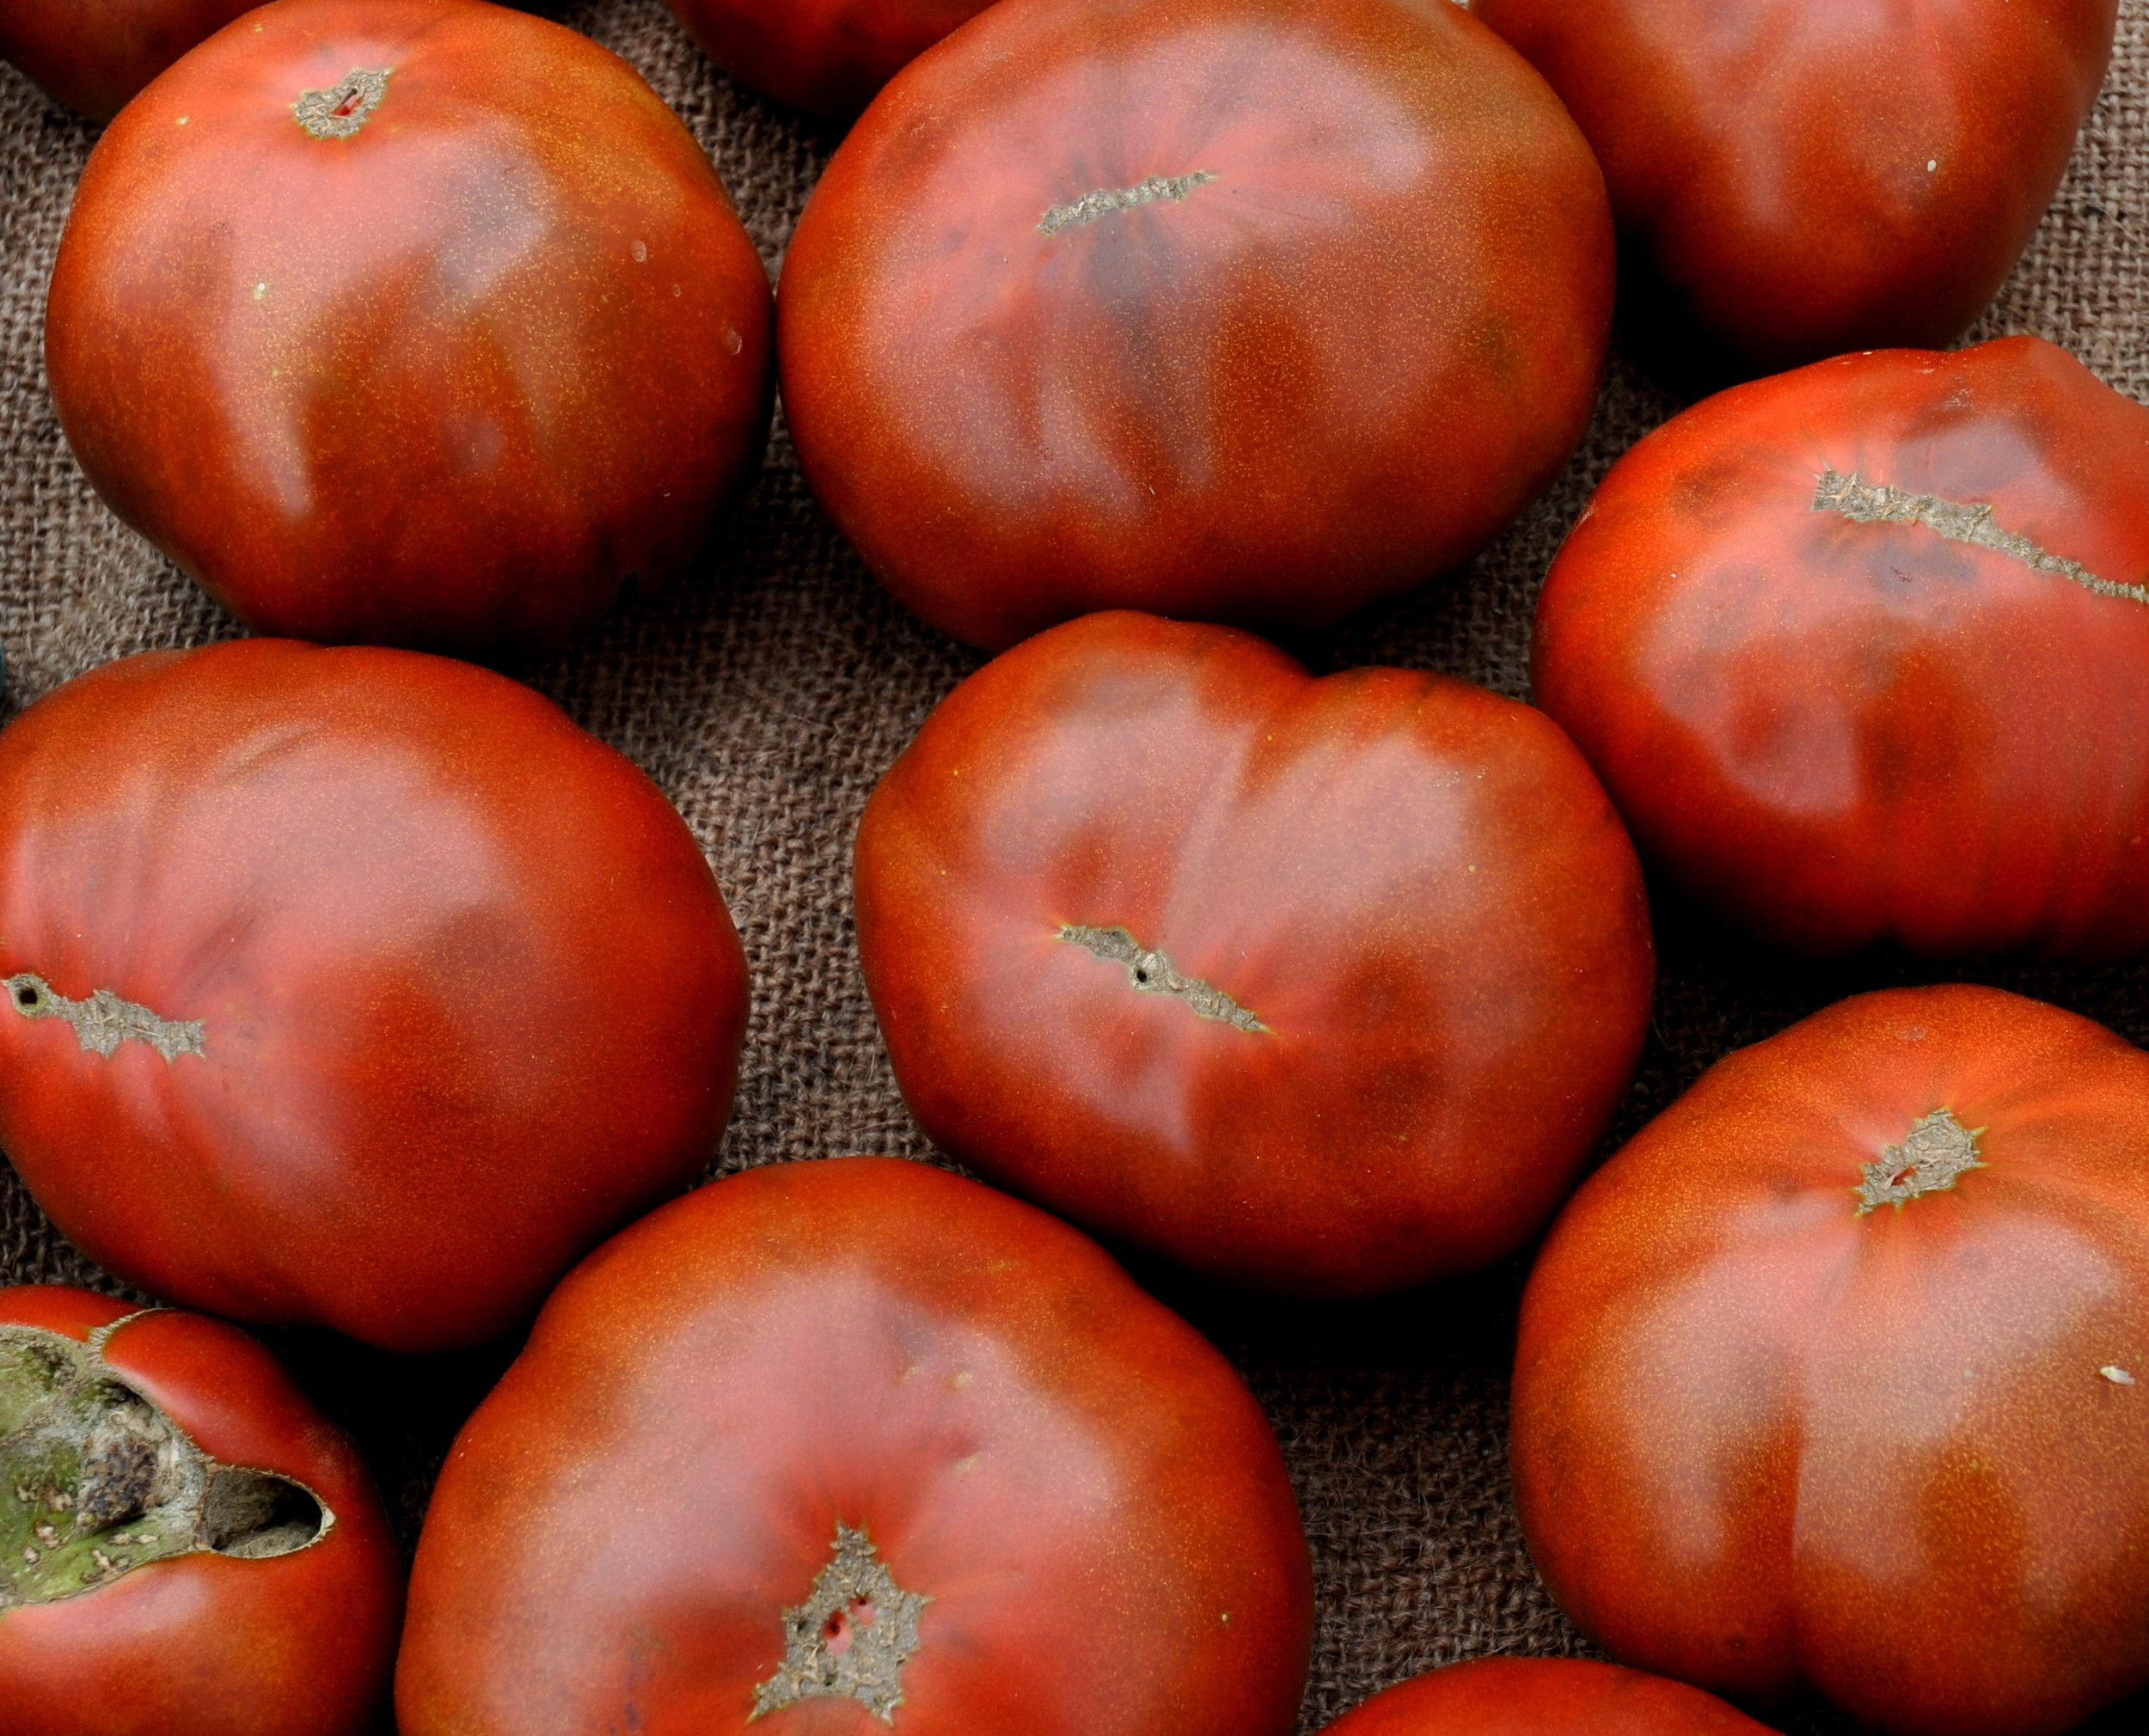 Paul Robeson heirloom tomatoes from One Leaf Farm. Photo copyright 2011 by Zachary D. Lyons.